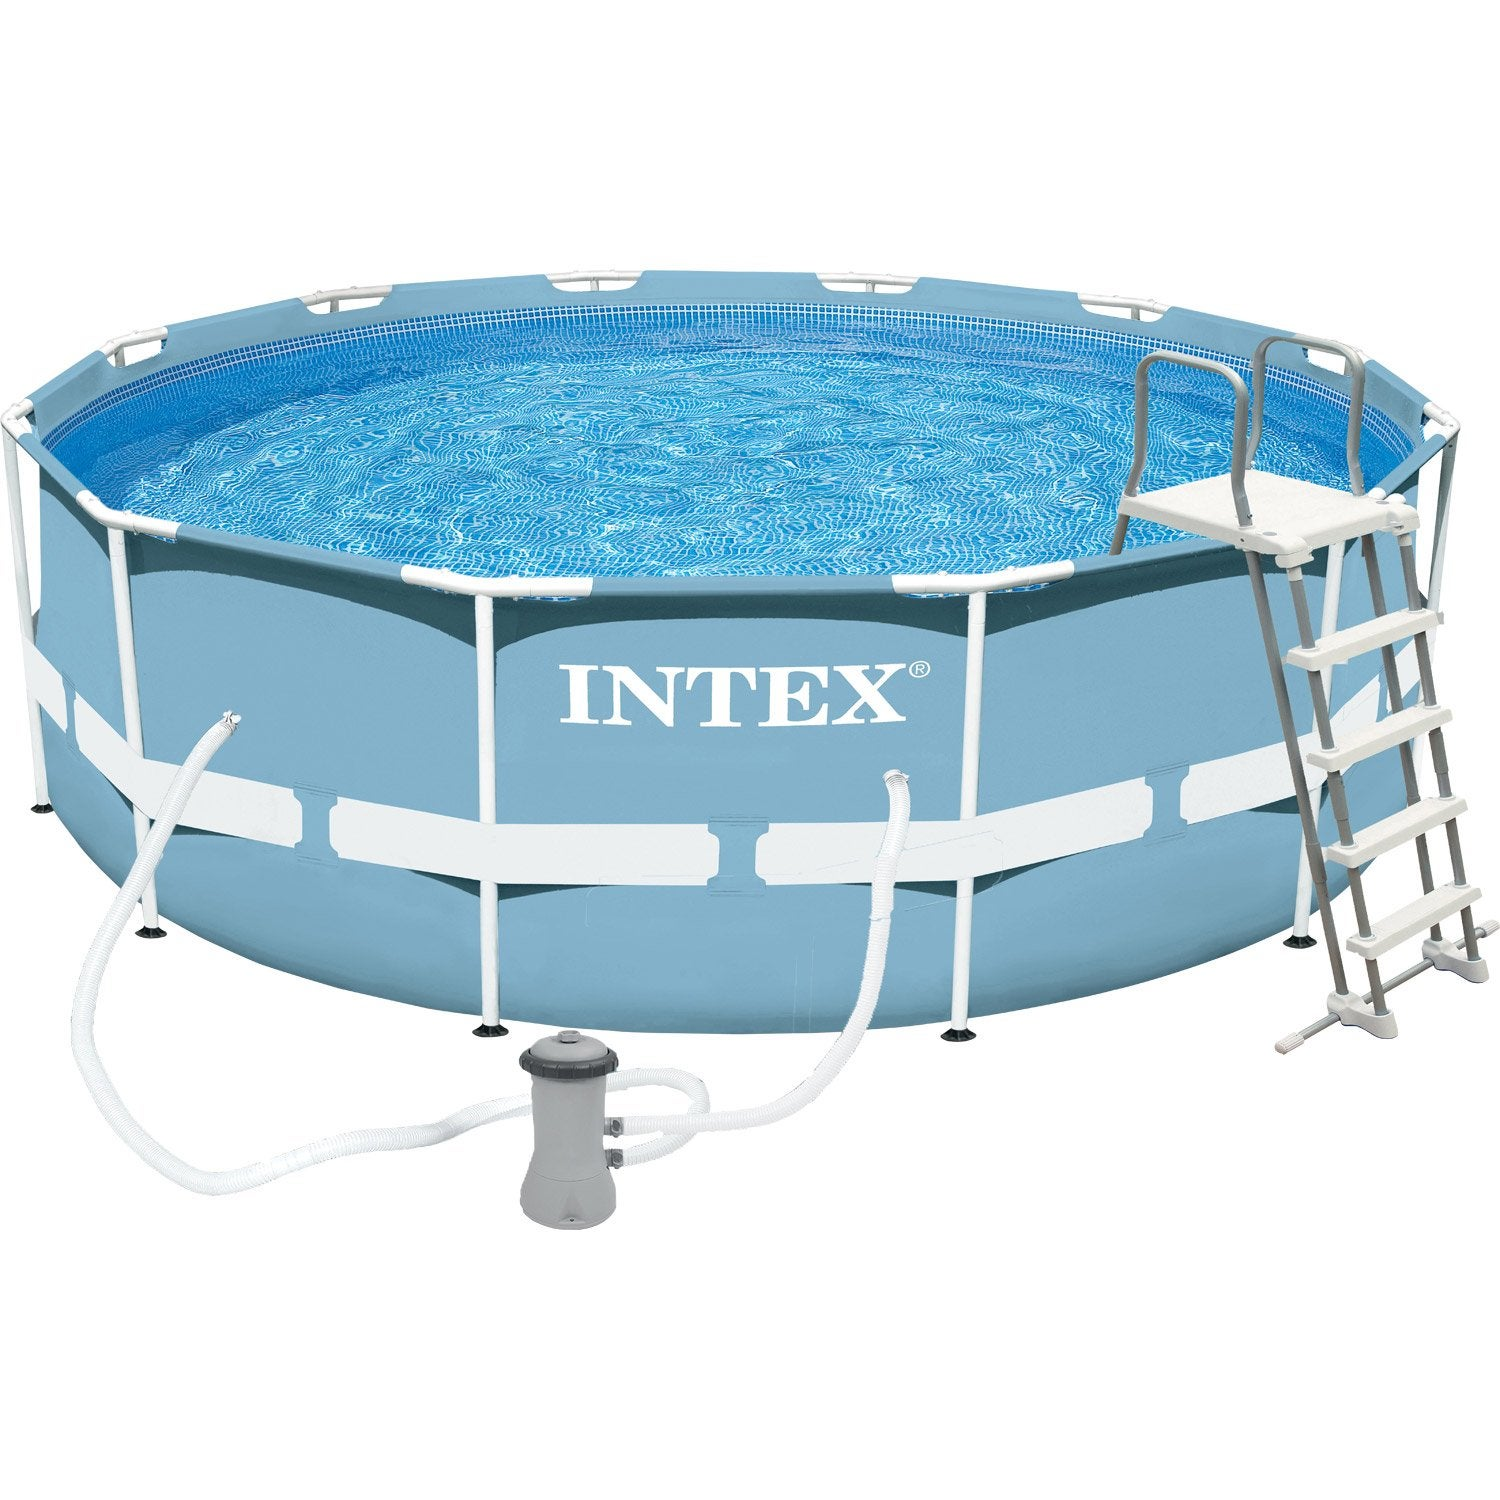 Piscine hors sol autoportante tubulaire prism frame intex for Piscine hors sol rectangulaire 4x3